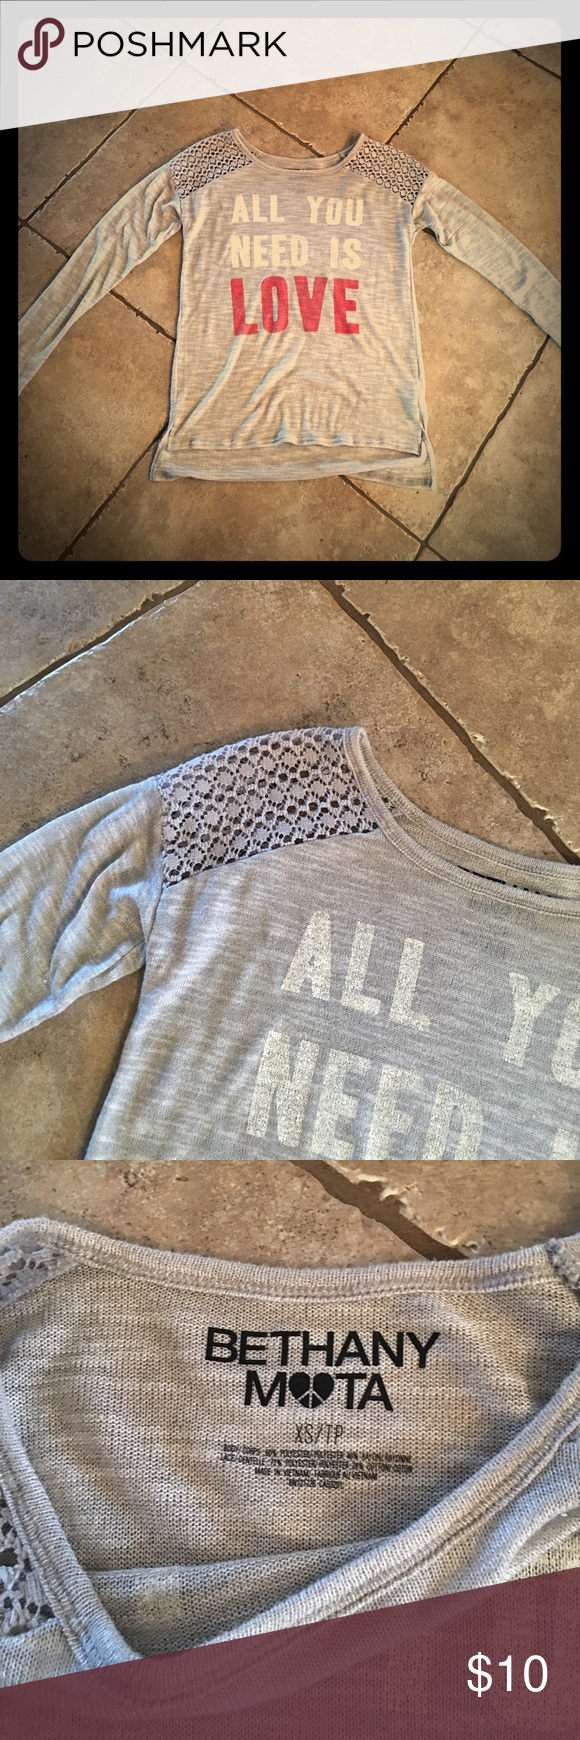 🛑ALL YOU NEED IS LOVE lite sweater❤️ Lite sweater and very comfortable. Worn a couple of times and in excellent condition. Purchased from local boutique❤️ says XS I'm a 34DD and a 4/6 and fits me. bethany mota Sweaters